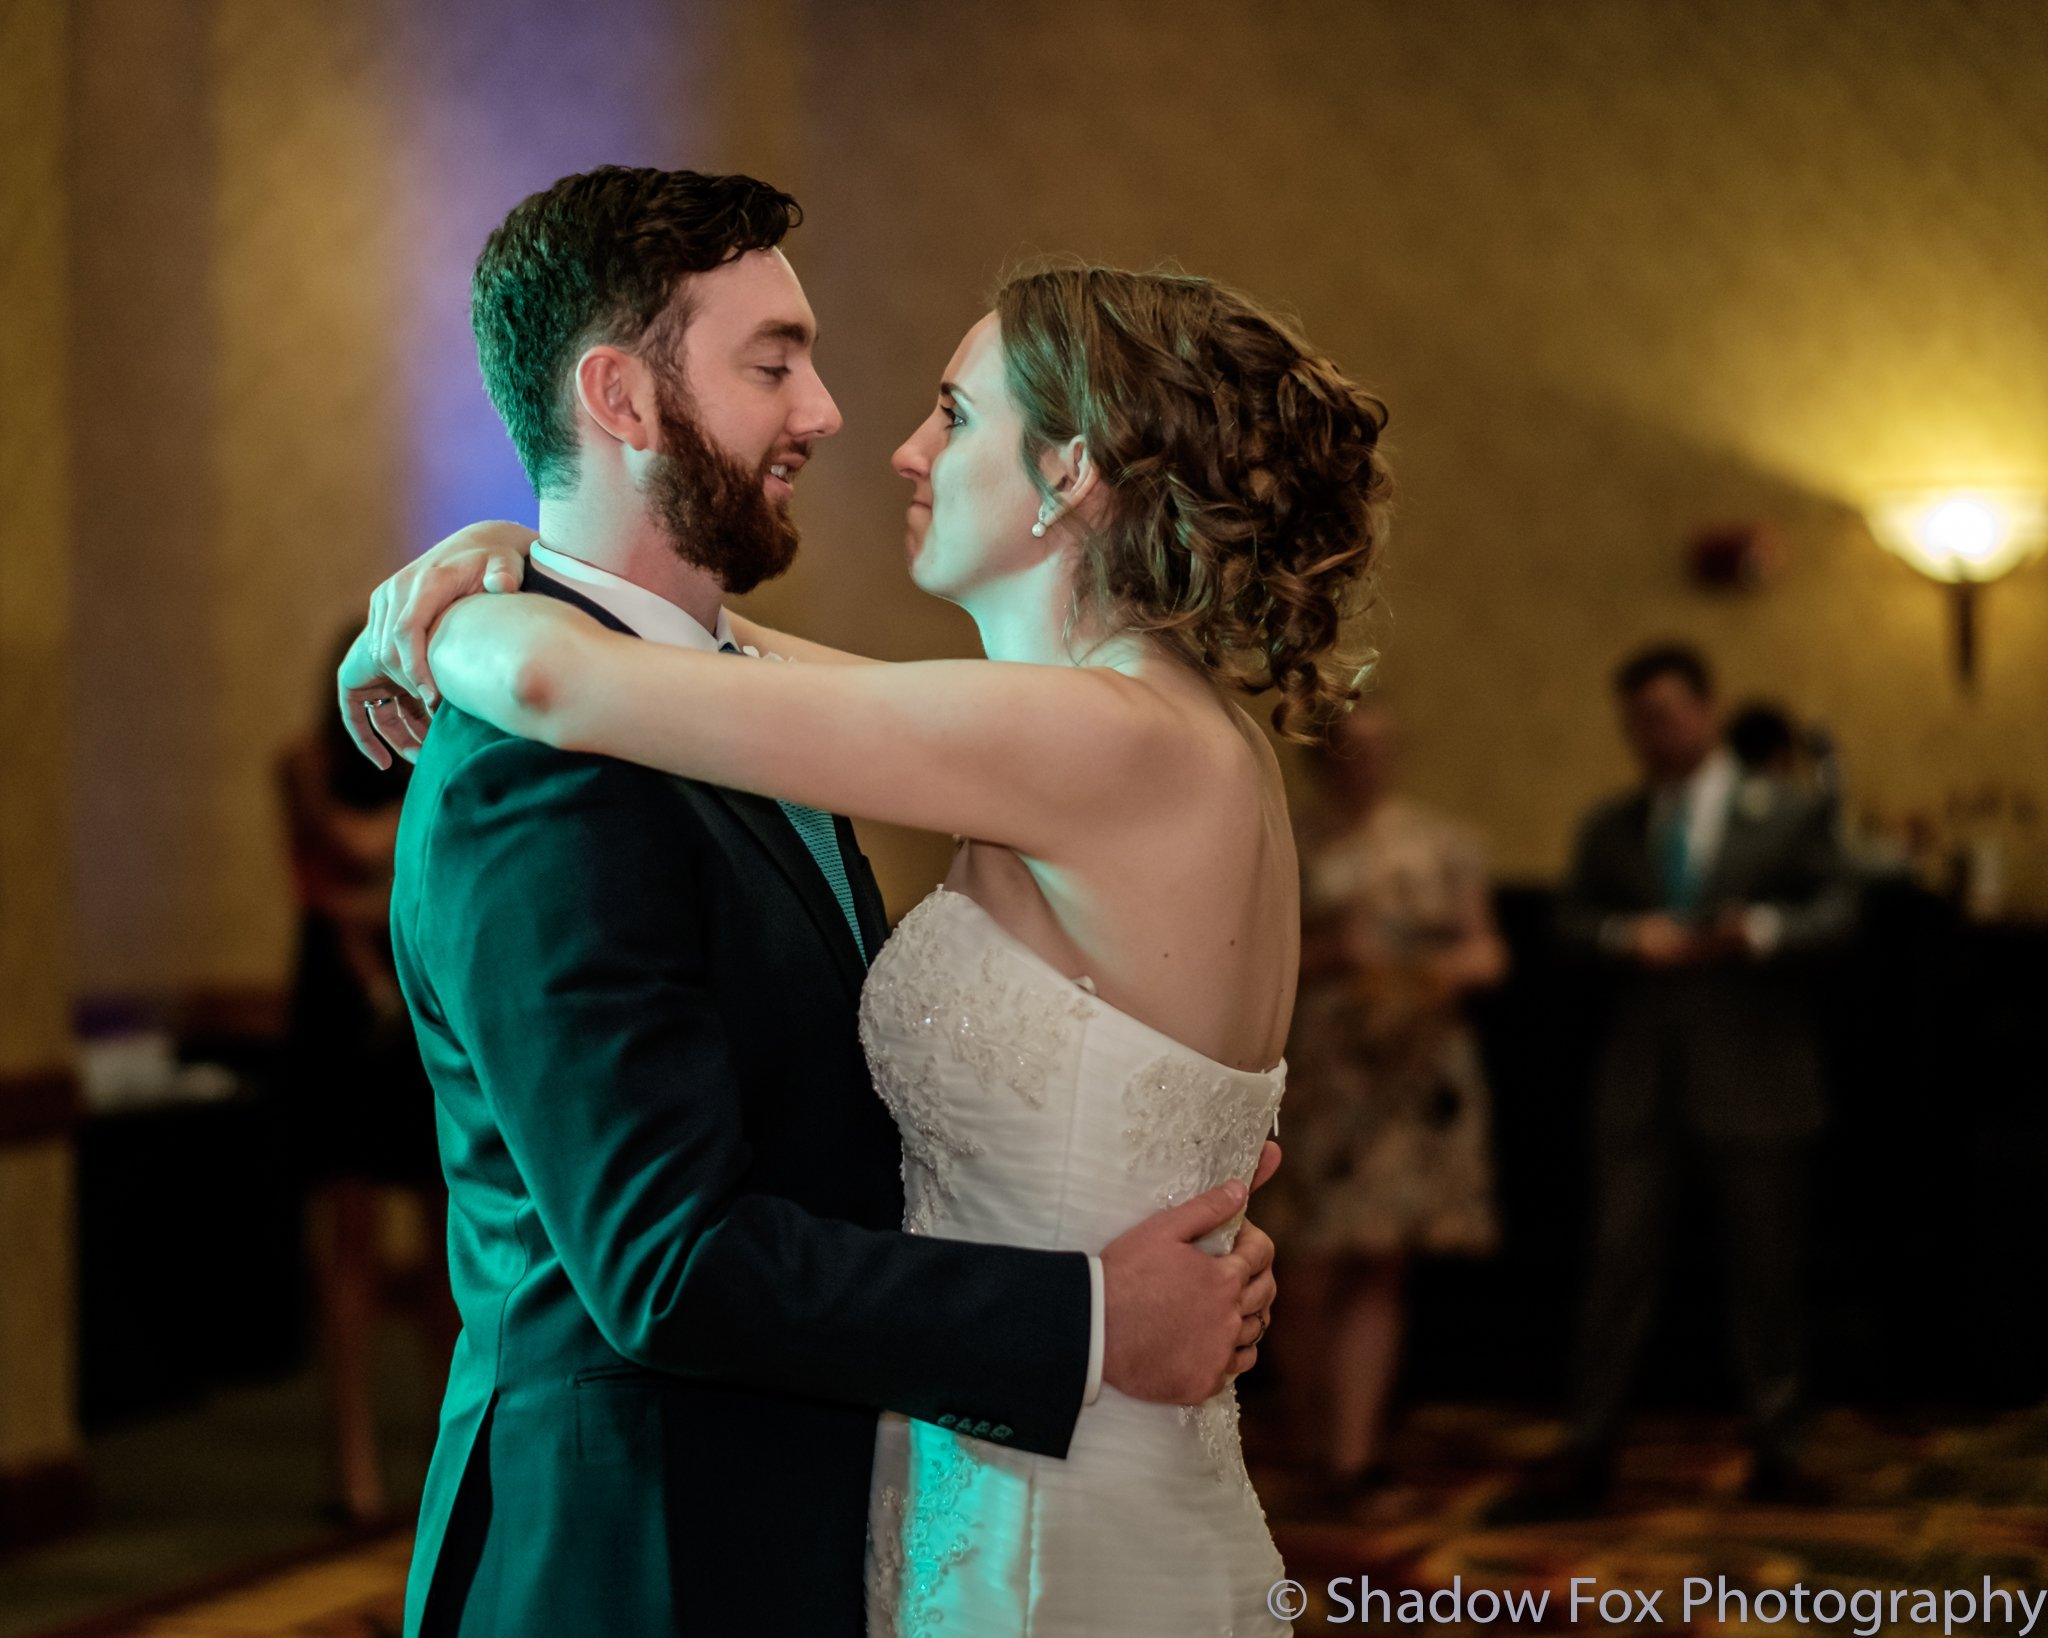 Newly married couple has first dance at wedding reception